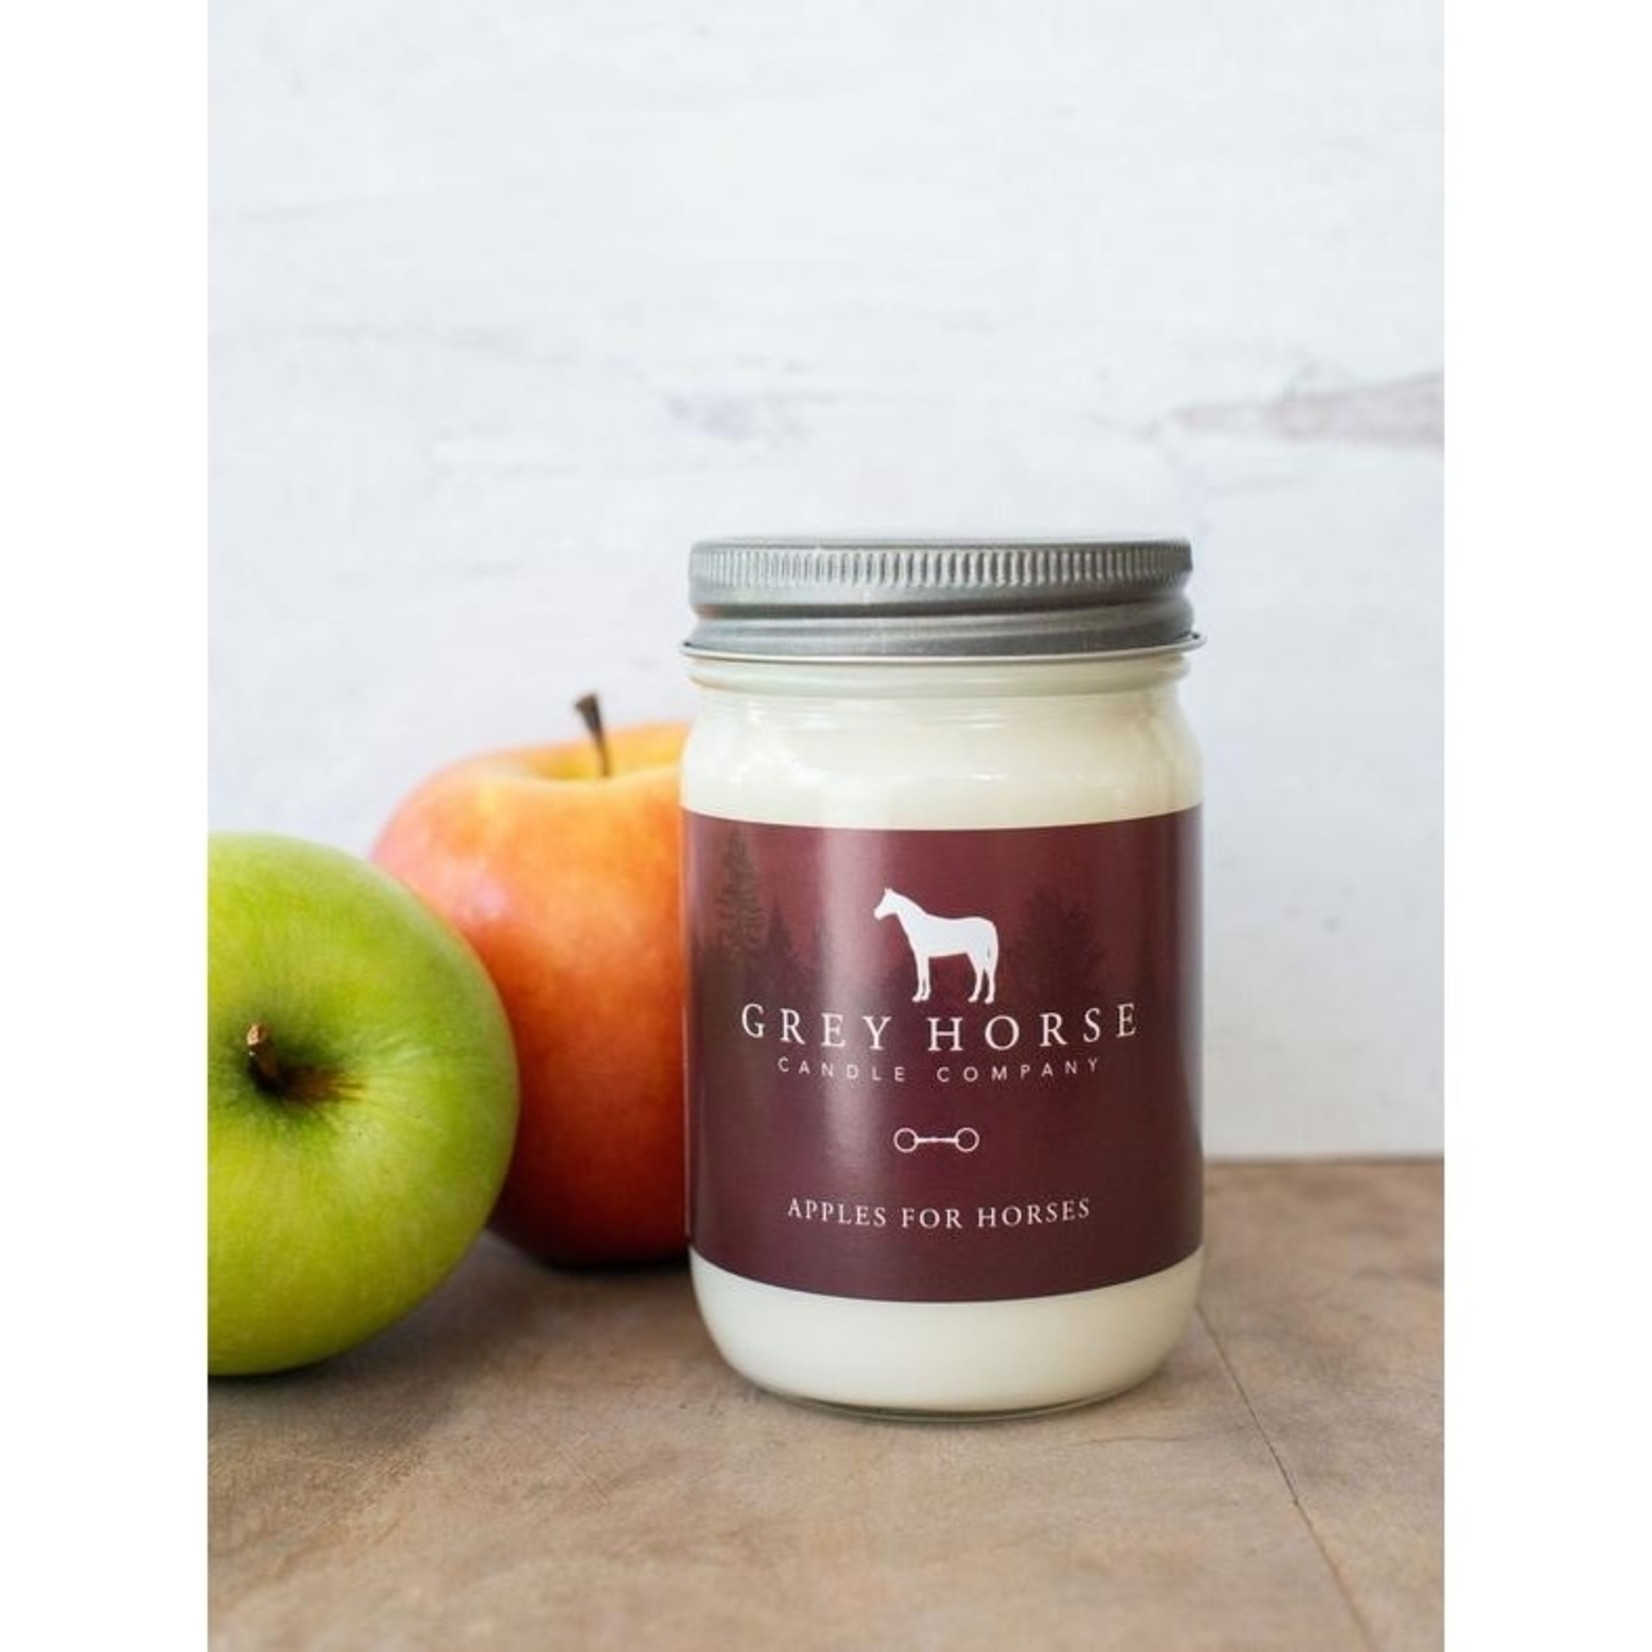 Grey Horse Candles Grey Horse Candle - Apples For Horses 12oz